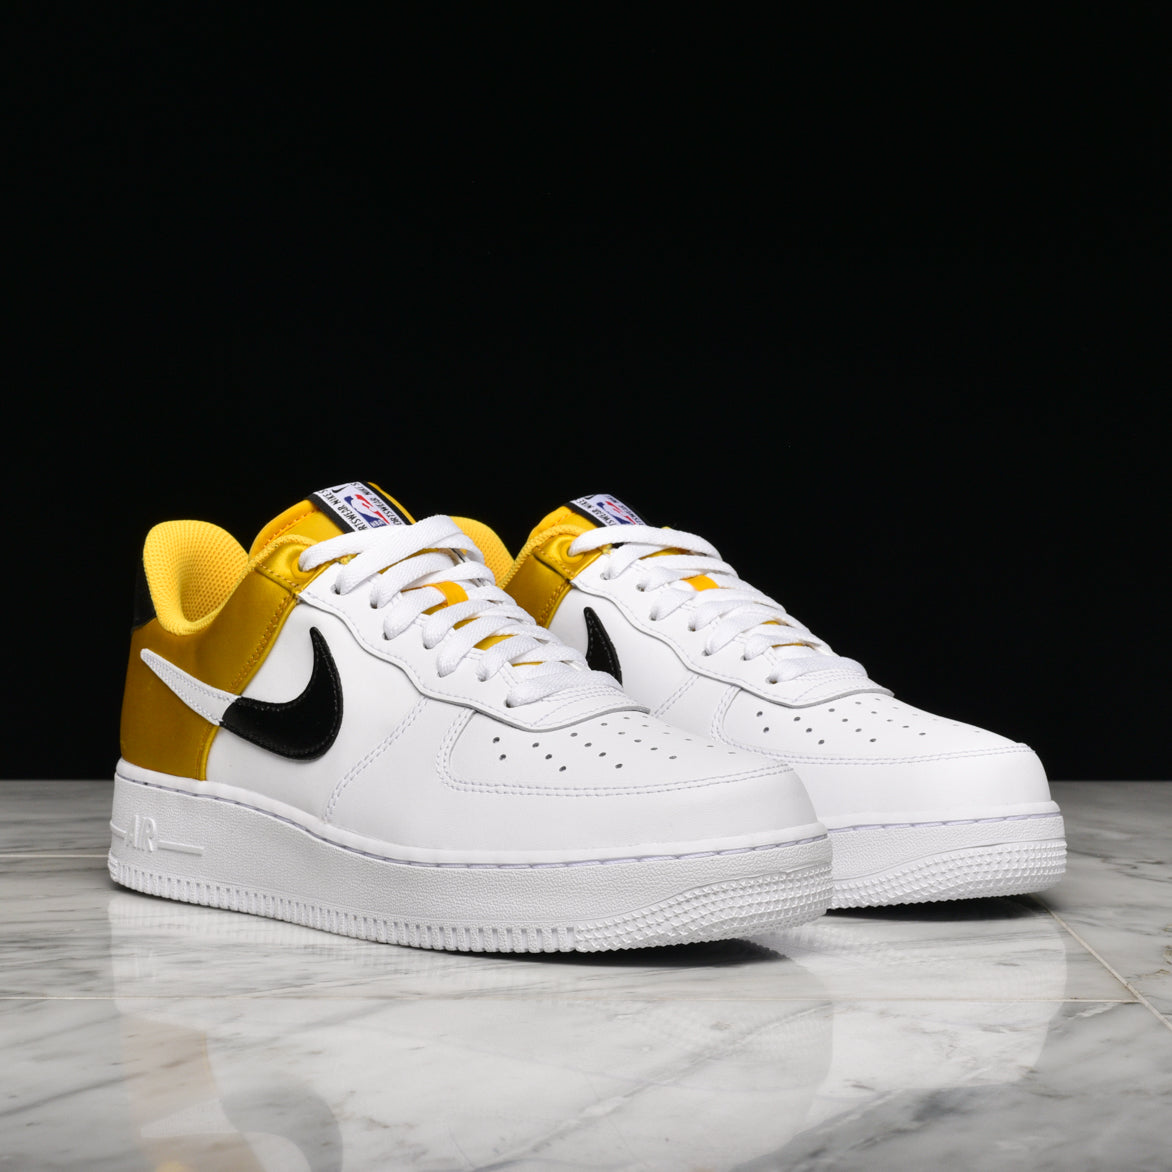 2air force 1 07 lv8 nba